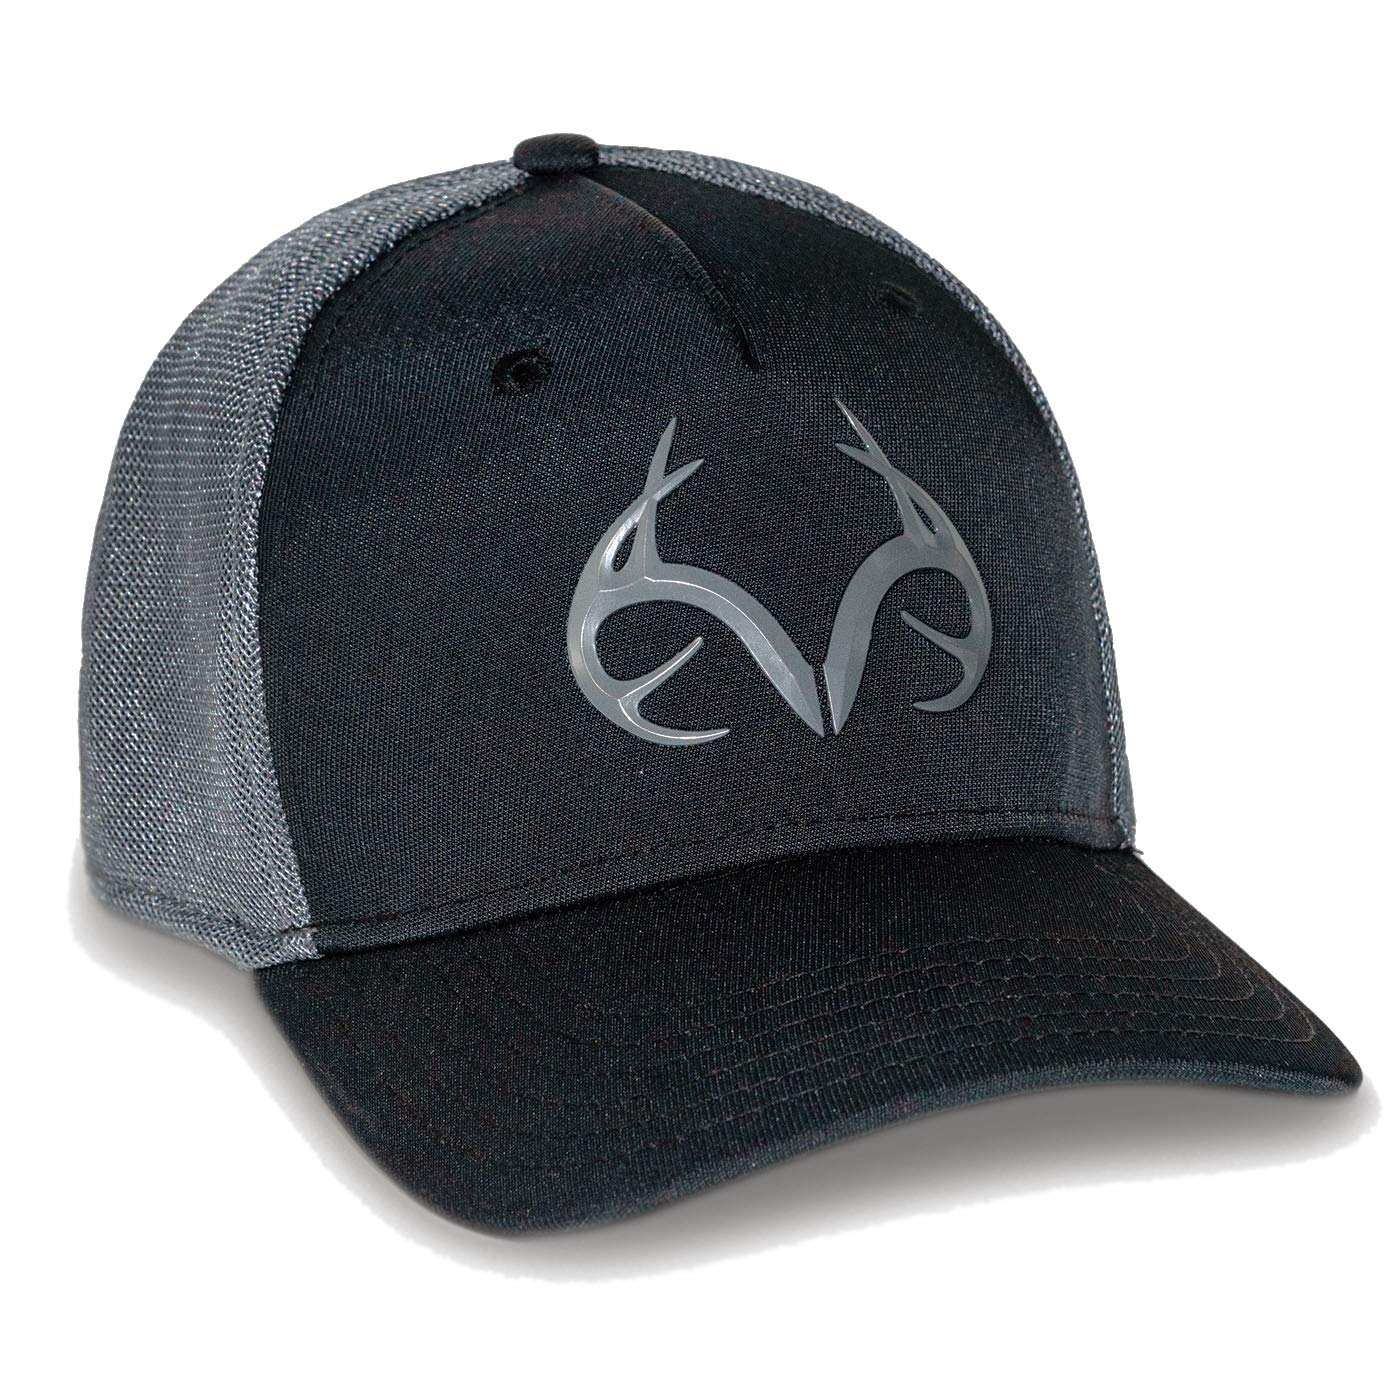 Realtree Men's Blackout Performance Fitted Hat (M/L)